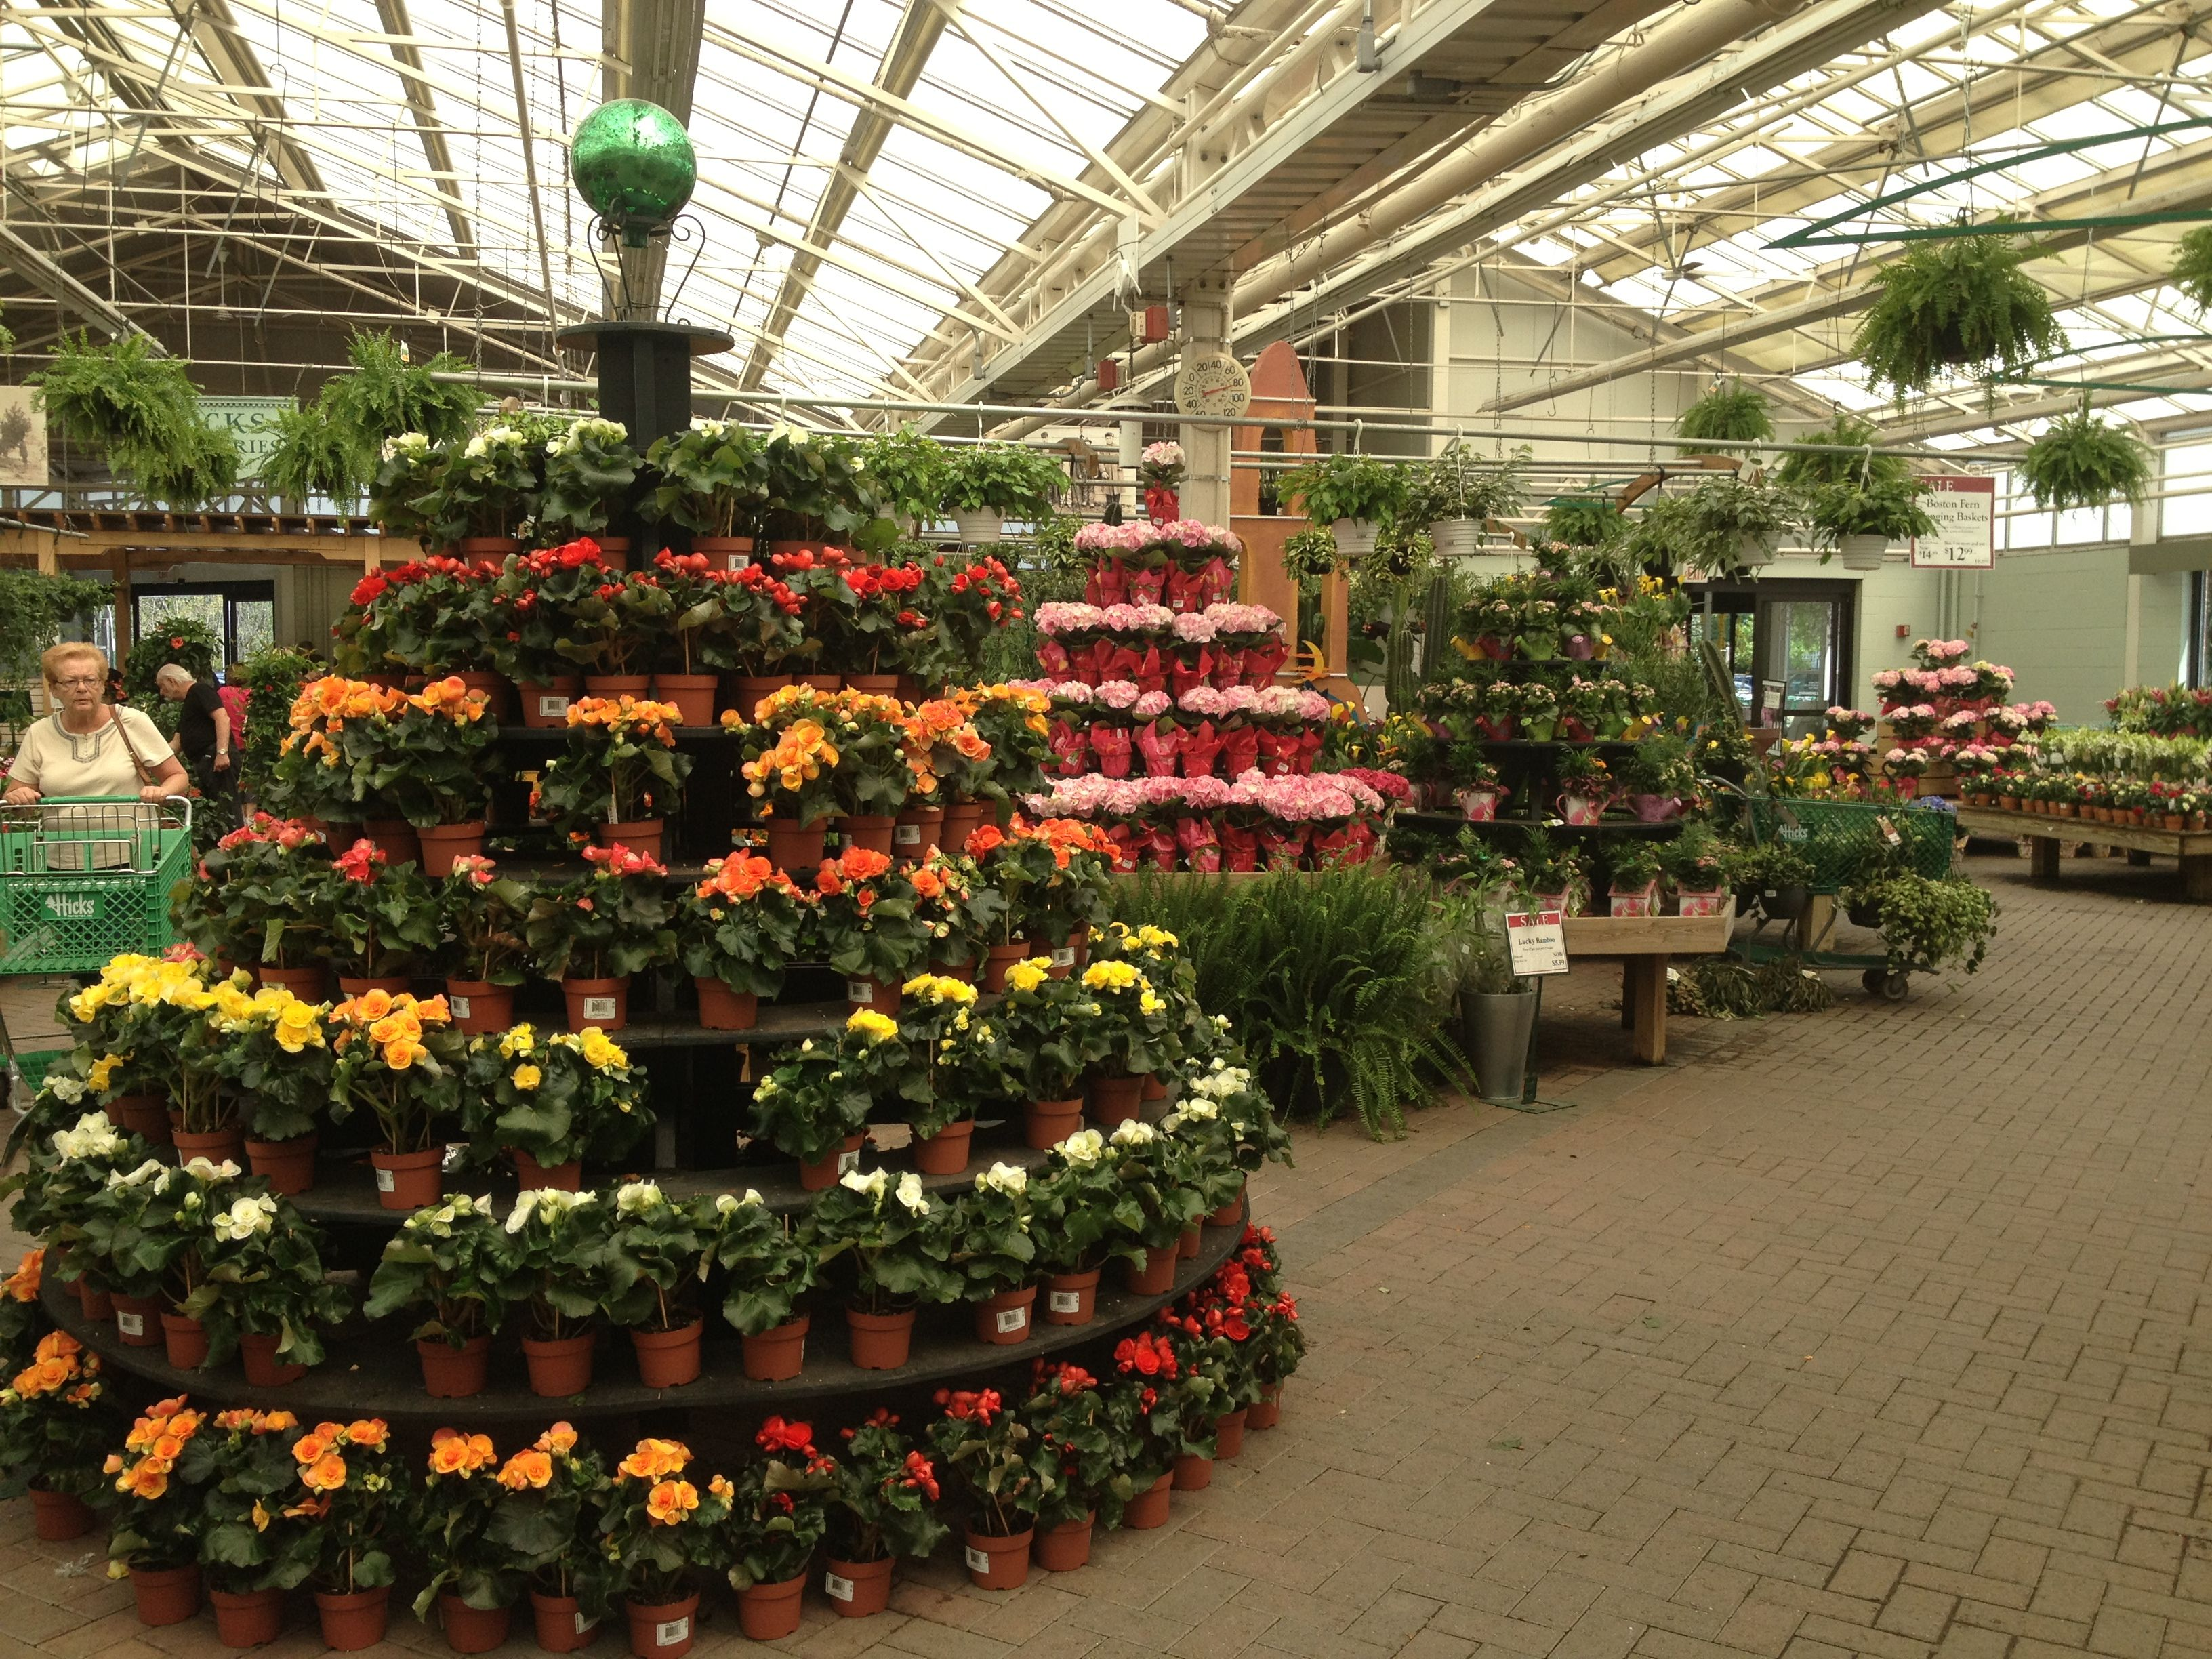 The Maiin Greenhouse At Hicks Nurseries